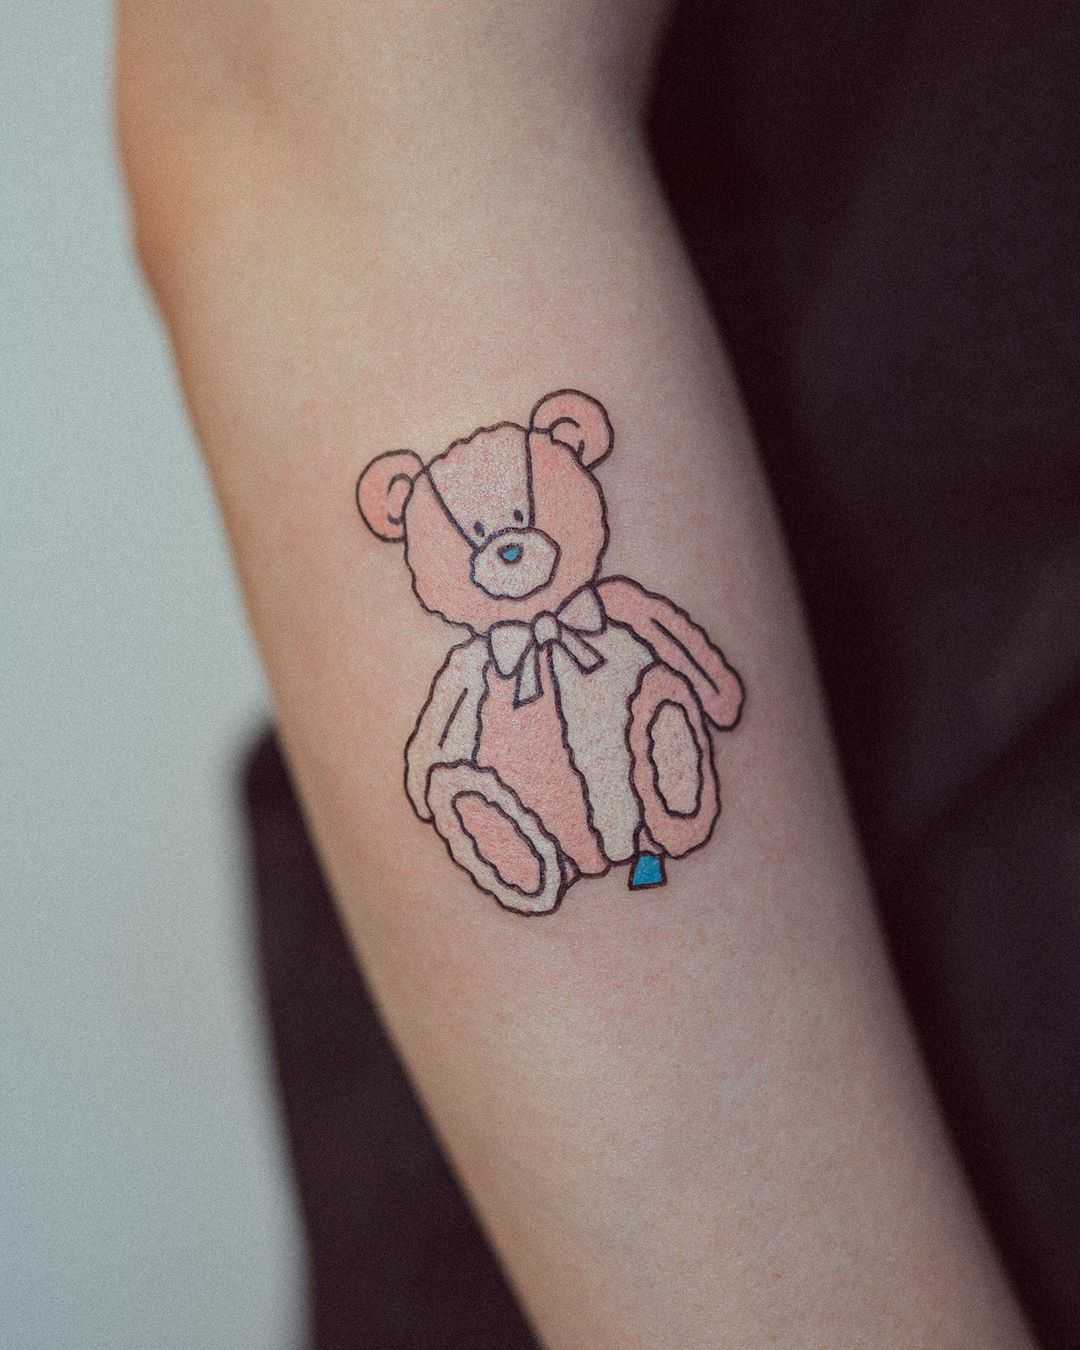 Childhood friend by tattooist Bongkee